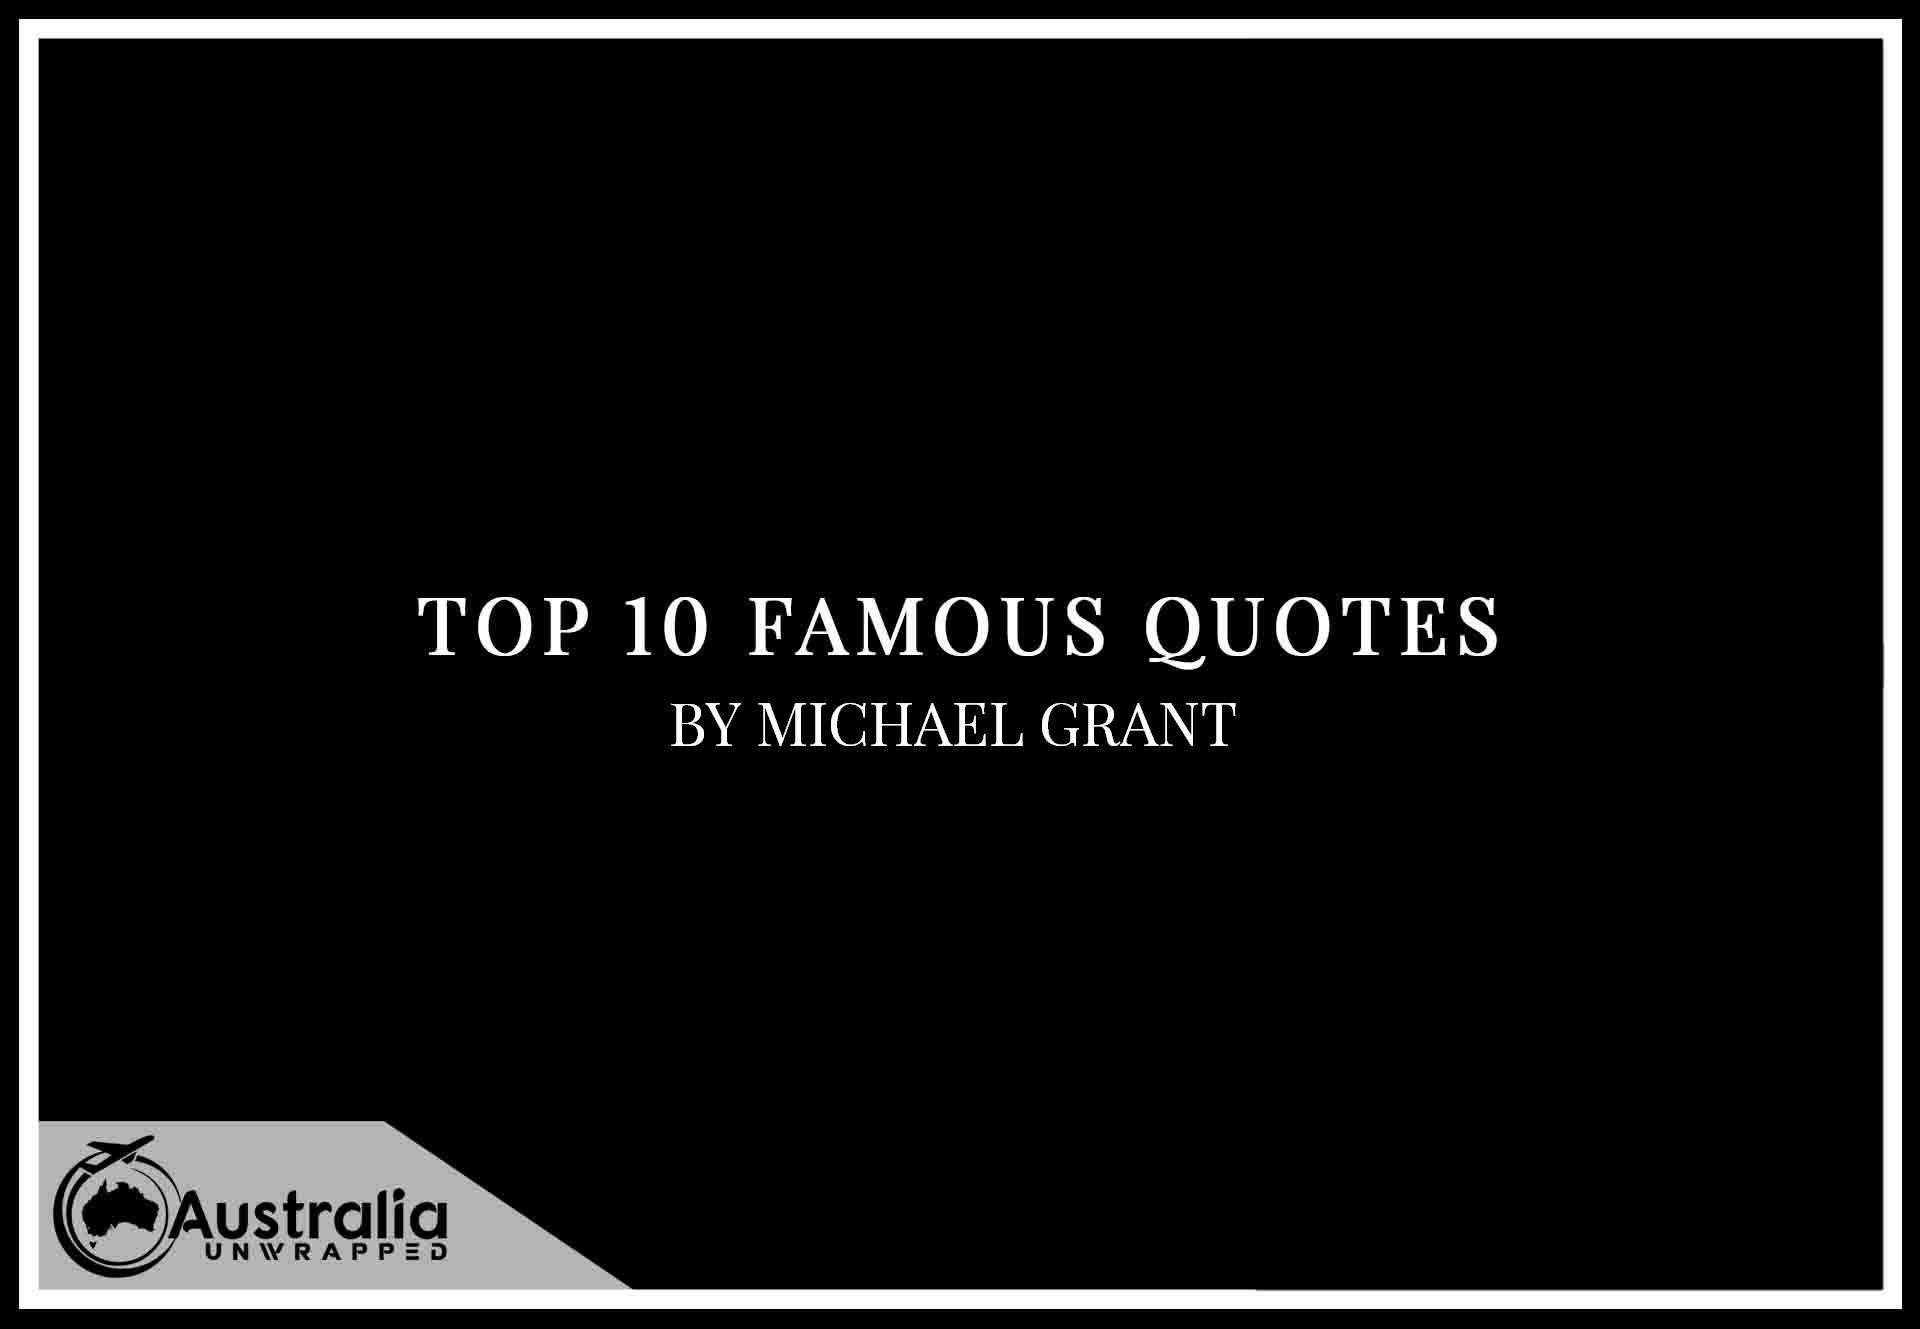 Top 10 Famous Quotes by Author Michael Grant